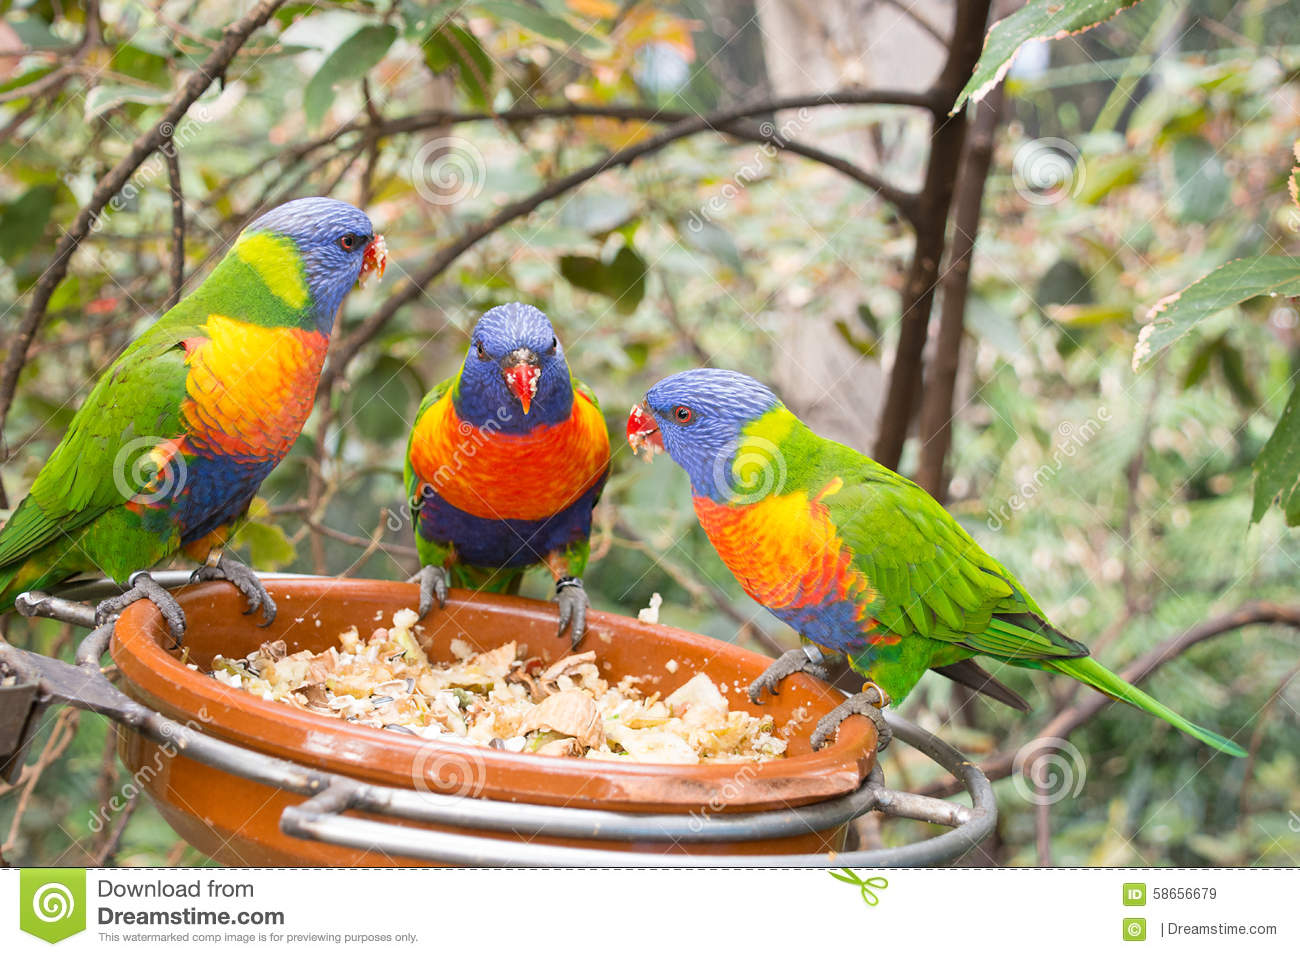 Parrots chatting and eating